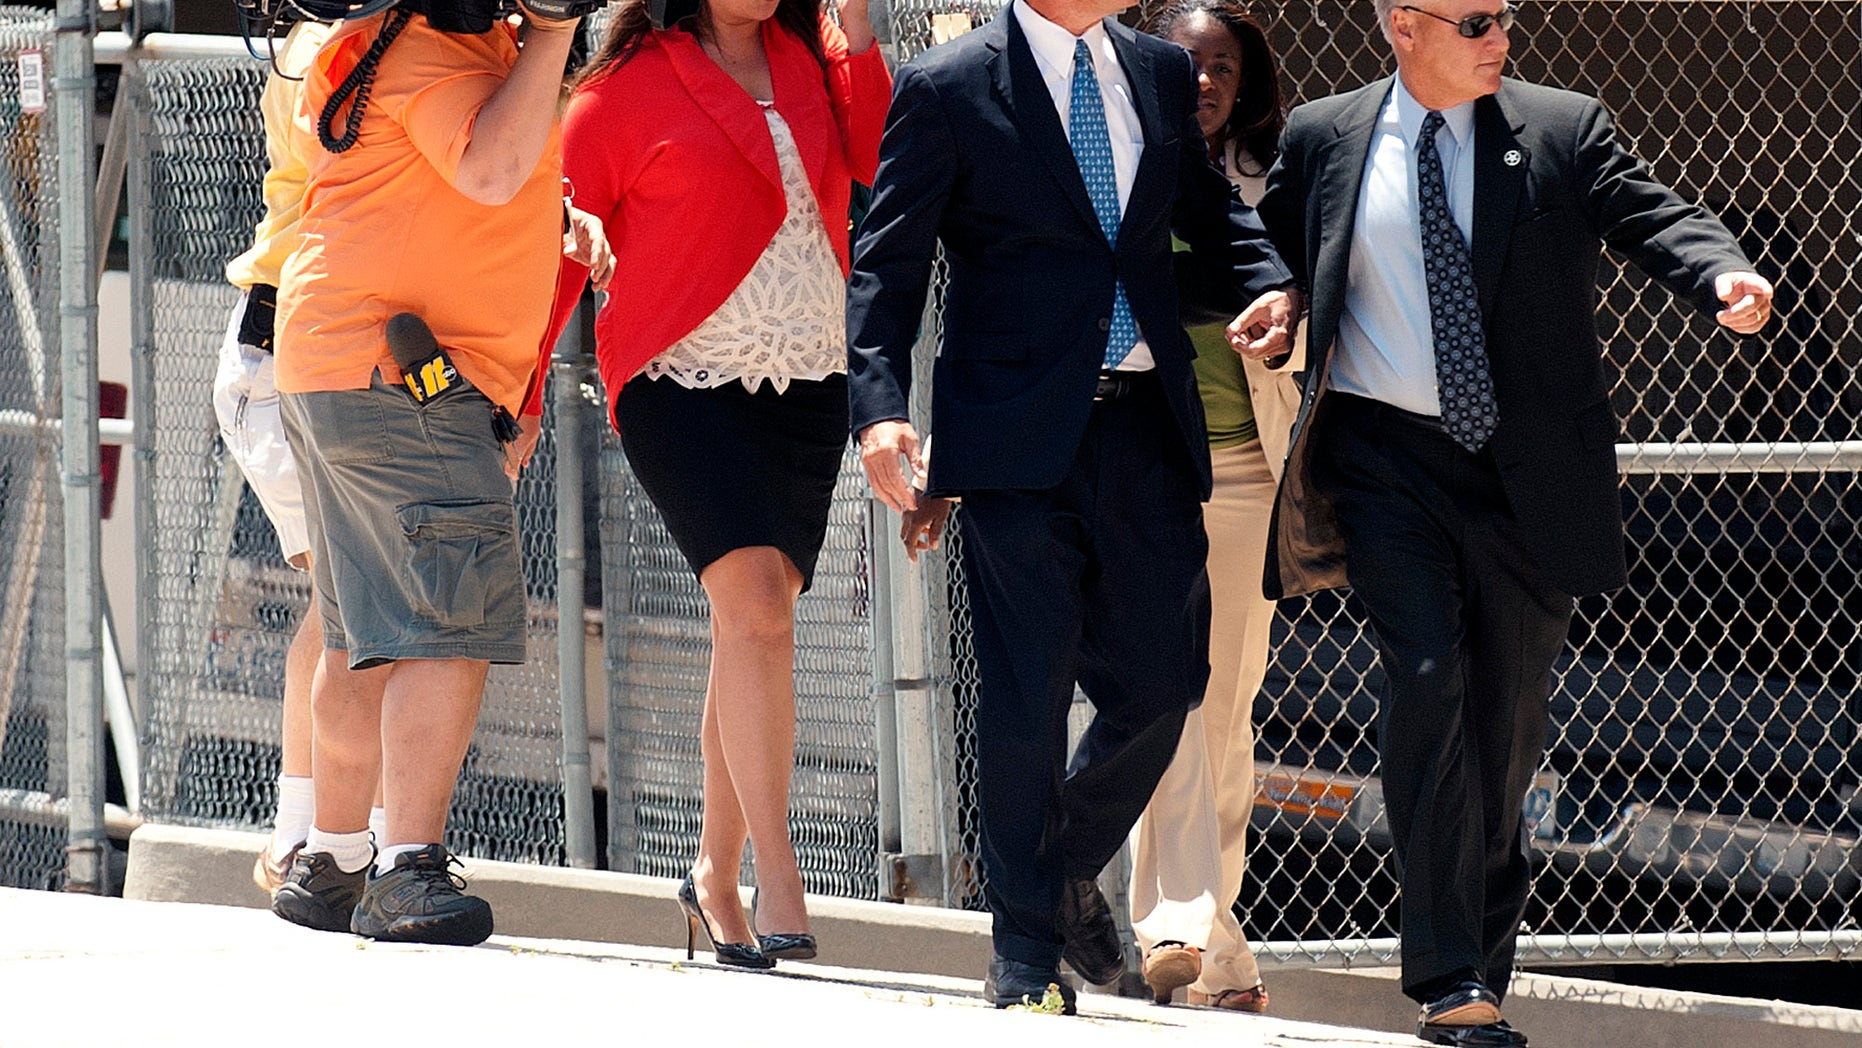 John Edwards, center, enters the Federal Building in downtown Winston-Salem, N.C. on Friday, June 3, 2011. (AP)